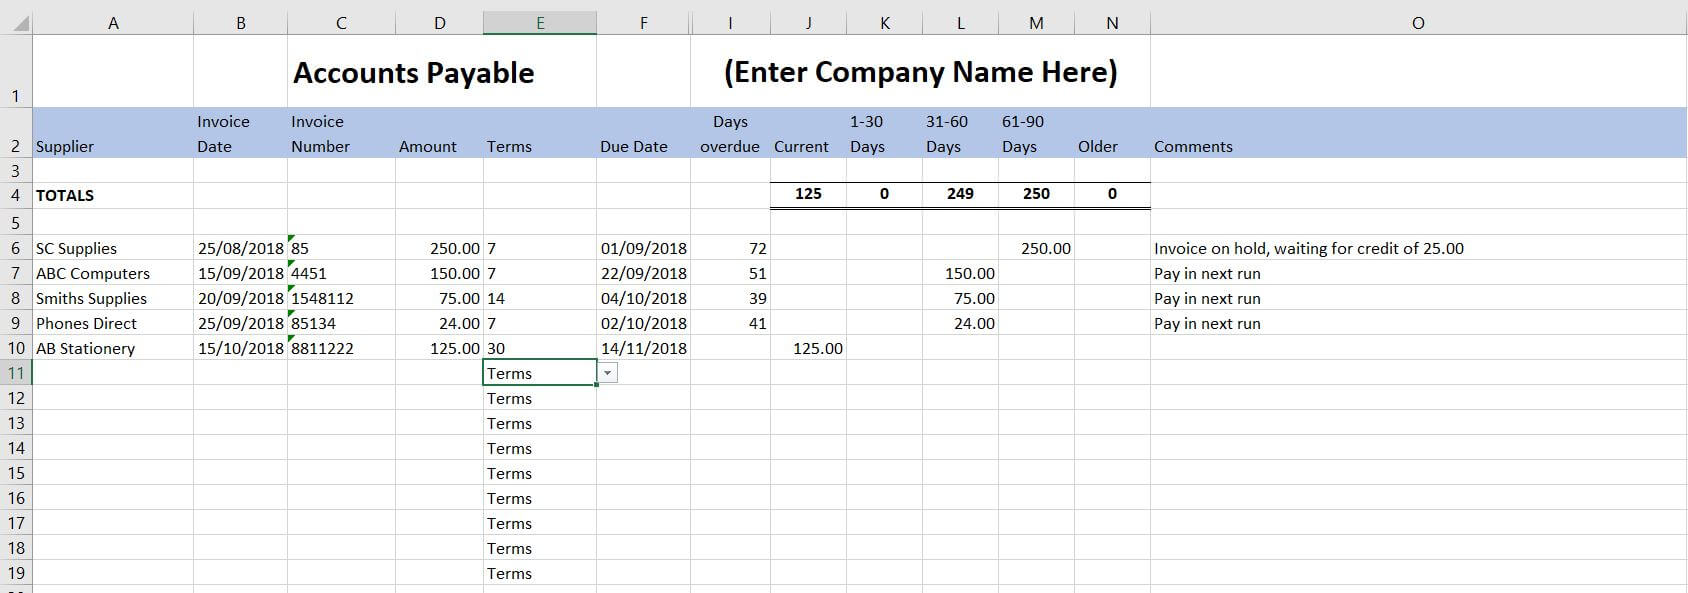 Free Excel Bookkeeping Templates - 14 Accounts Spreadsheets In Bookkeeping For Small Business Templates